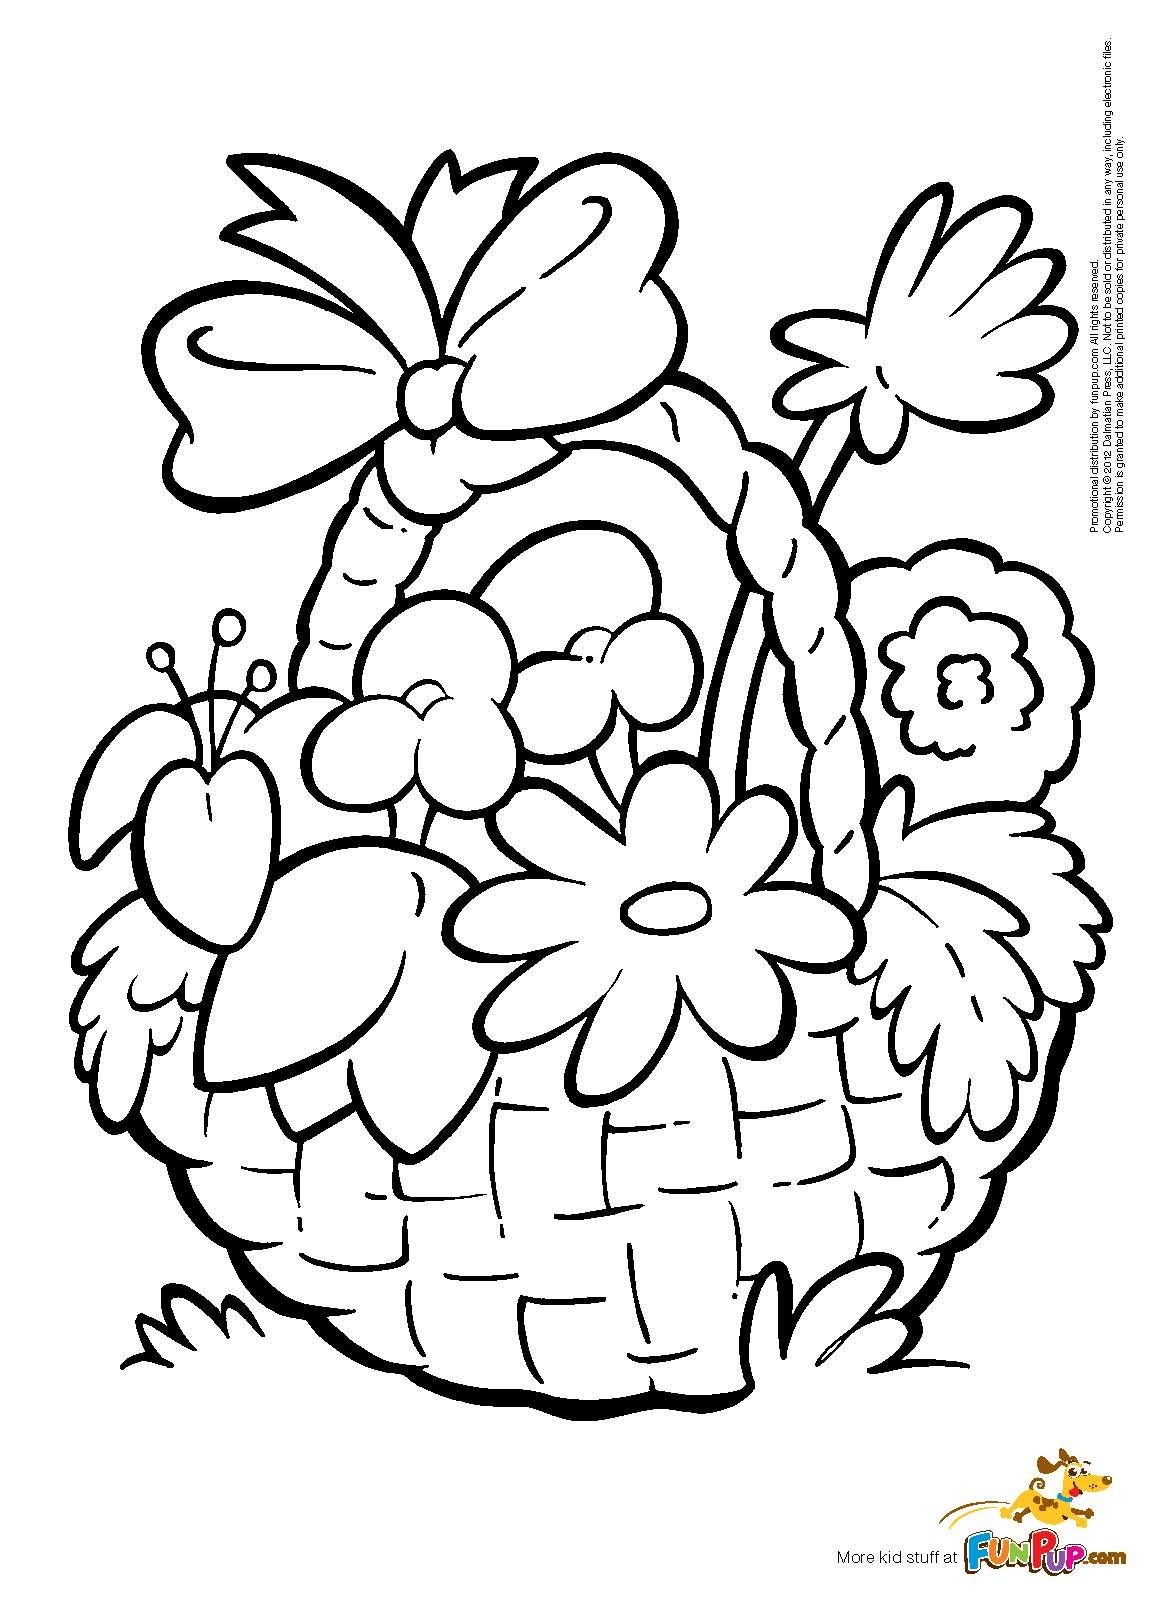 outline pictures flowers coloring pages for kids | Flower Basket Coloring Page | Easter egg coloring pages, Flower coloring pages, Free printable ...